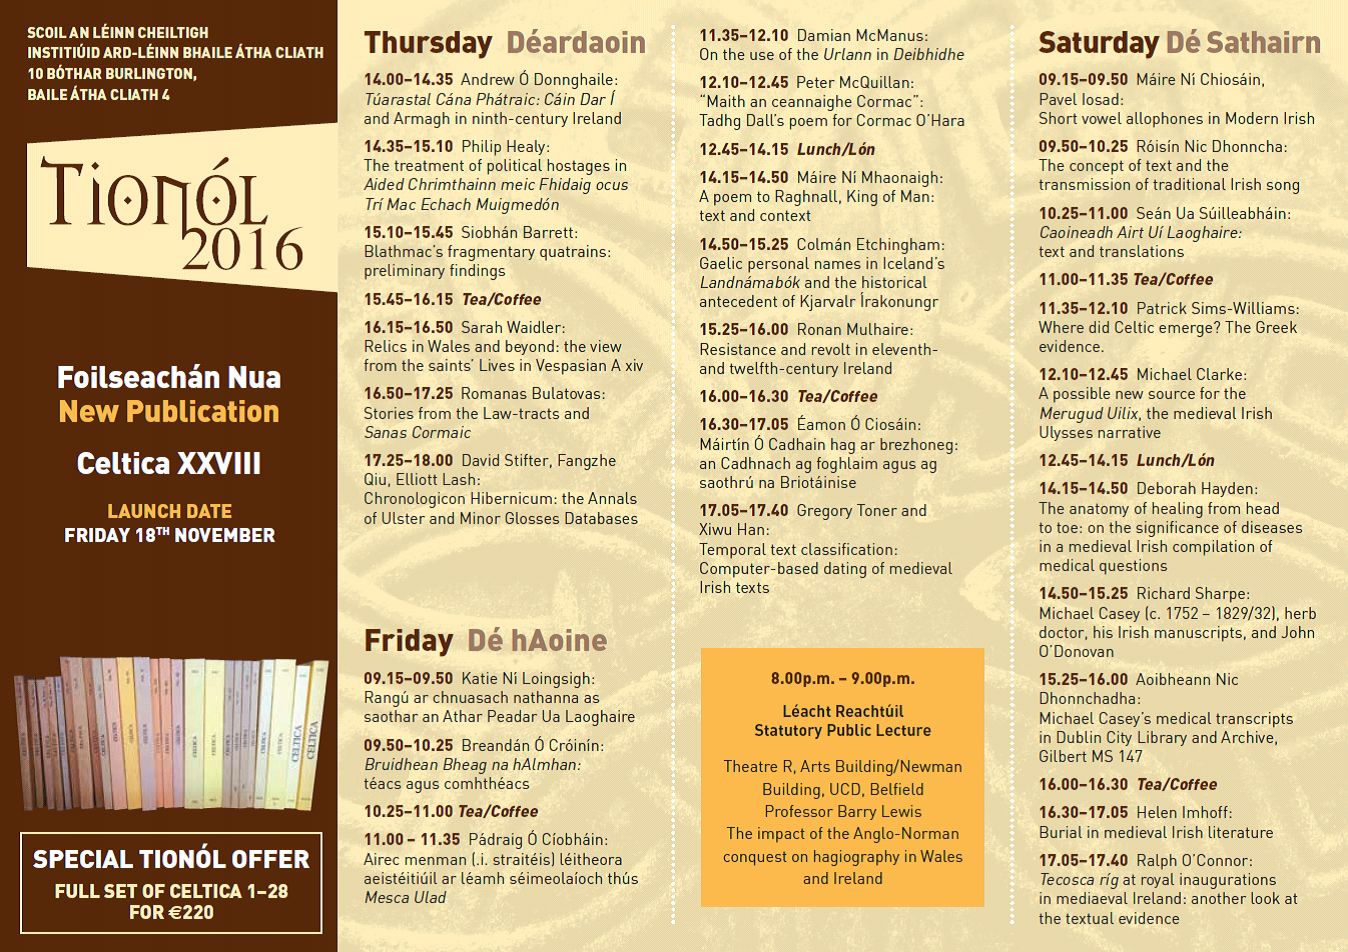 Day 3 of #SCSTionol2016 is on today here at DIAS School of Celtic Studies @SCSLibrary https://t.co/RM6qZXB7PU https://t.co/tjKJi6104M